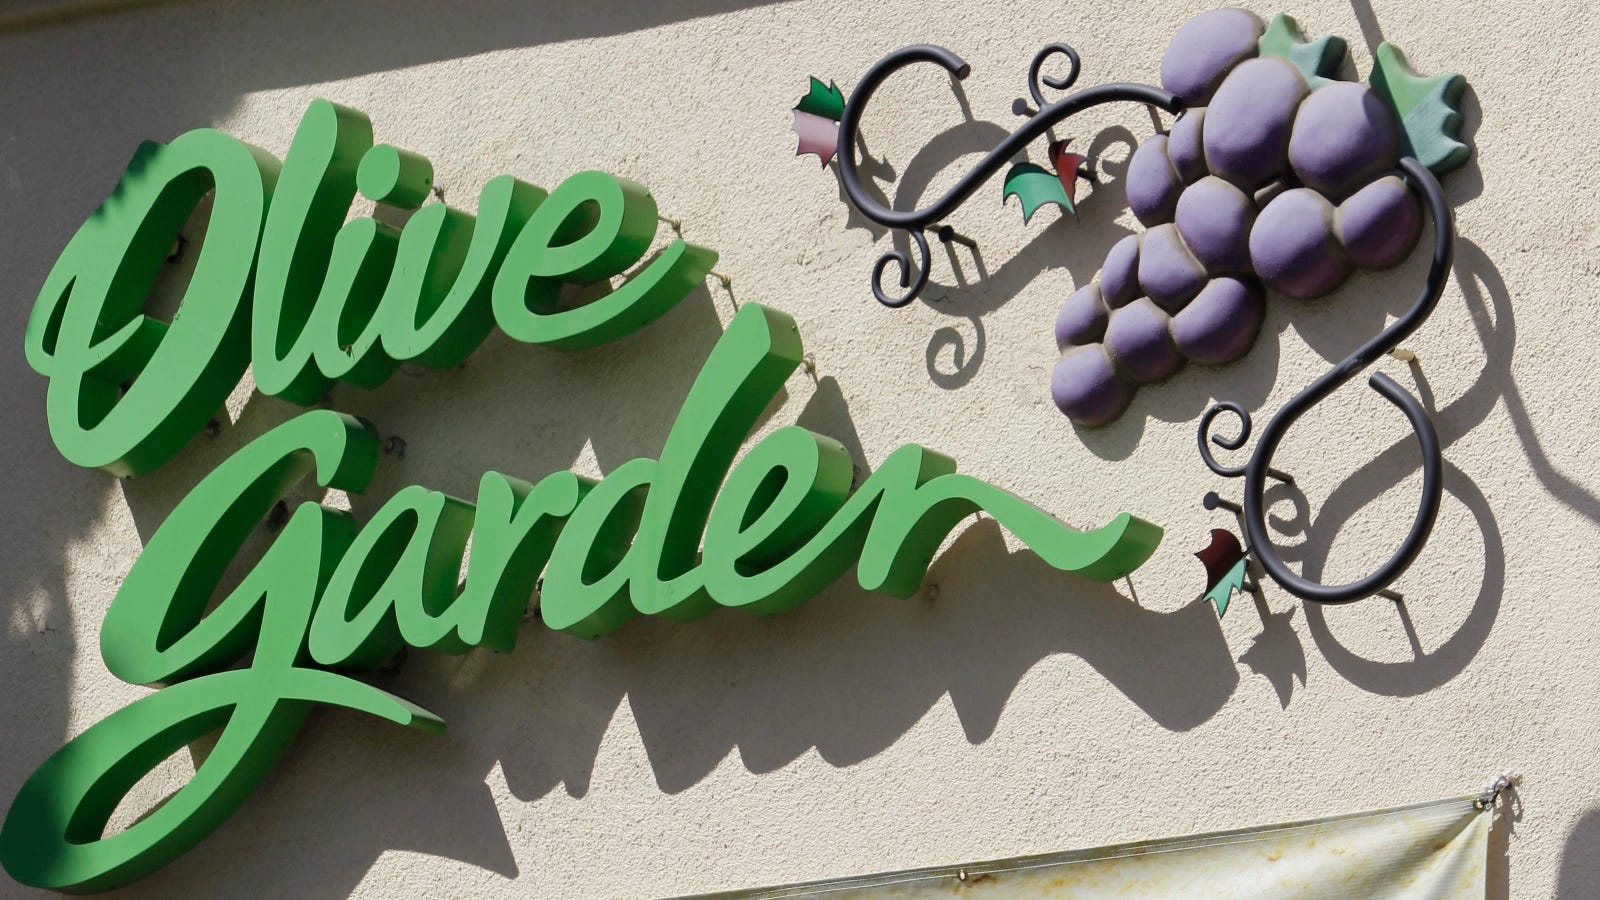 That Olive Garden Commercial Written By A Bot Is Likely Fake